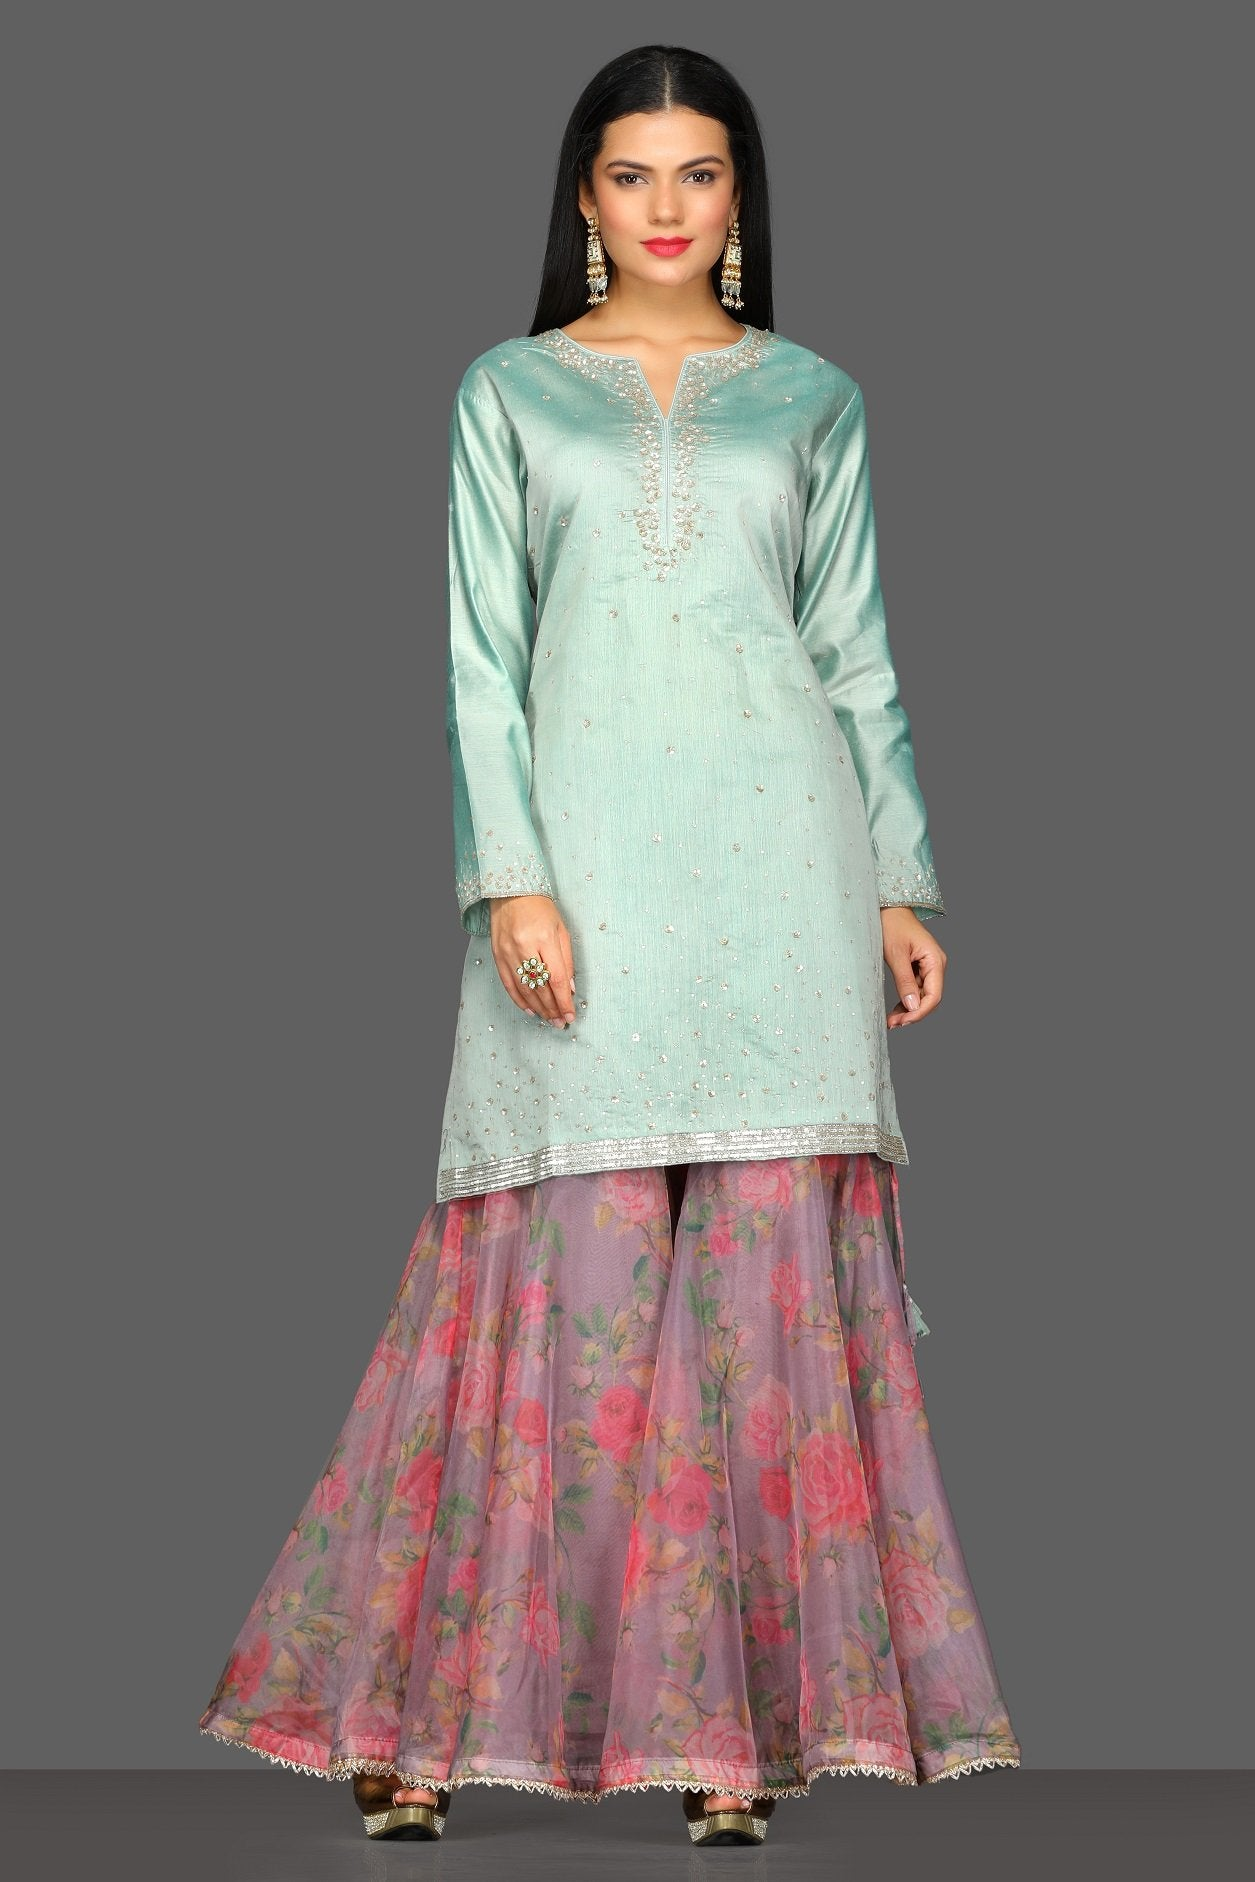 Shop beautiful mint green and floral pink embroidered sharara suit online in USA. Dazzle on weddings and special occasions with exquisite Indian designer dresses, sharara suits, Anarkali suits from Pure Elegance Indian fashion store in USA.-front